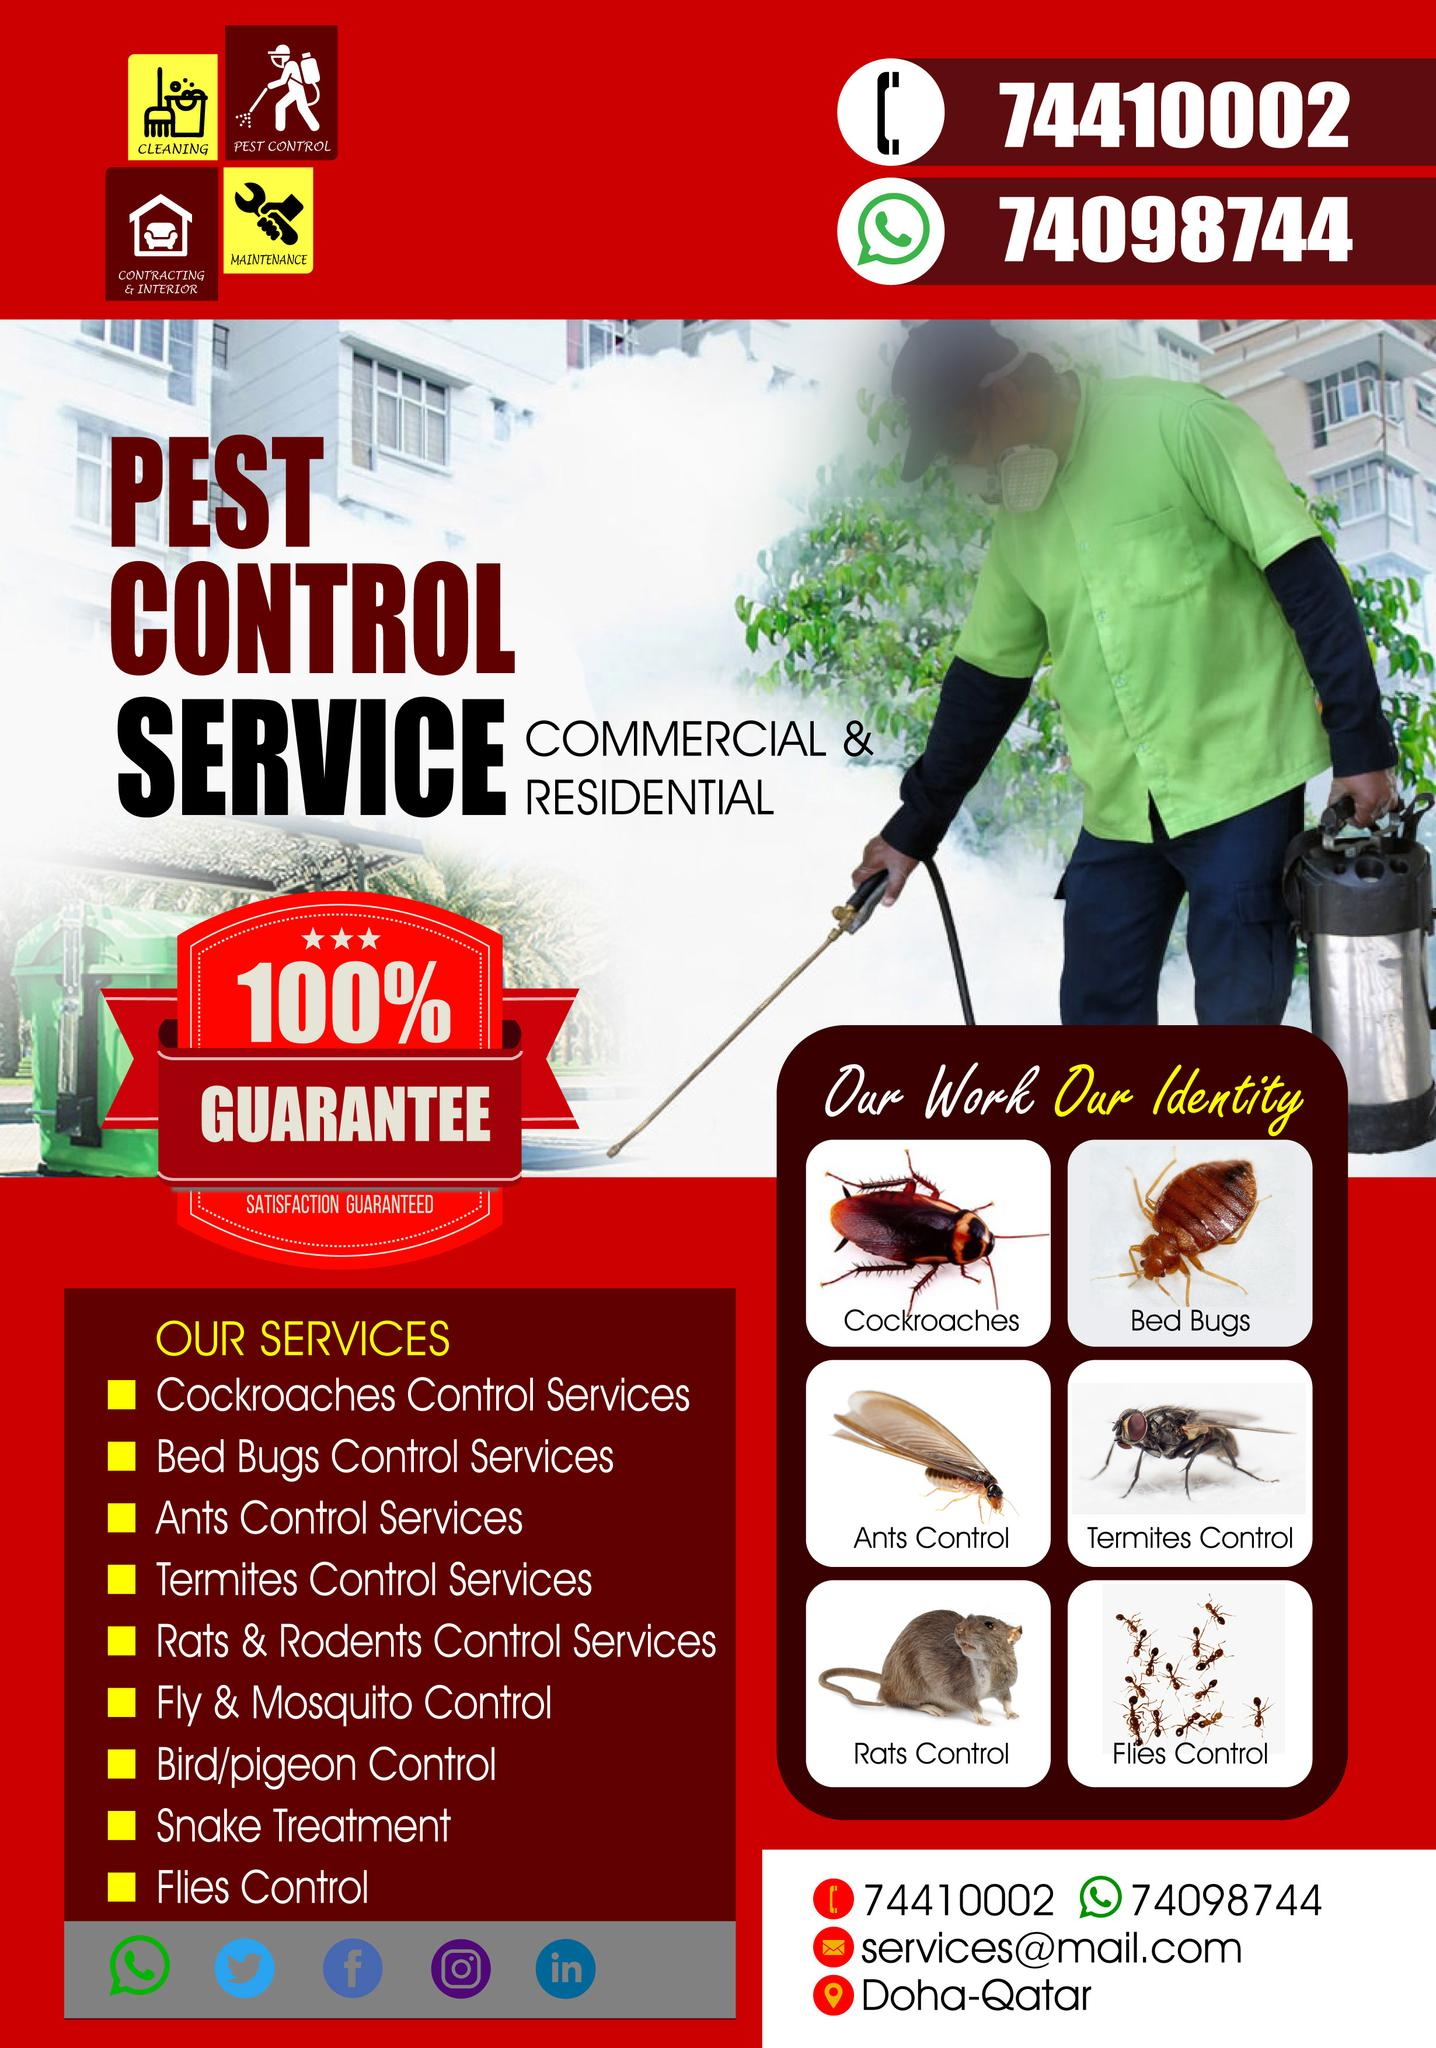 Pest Control Service at Affordable Price - Call On